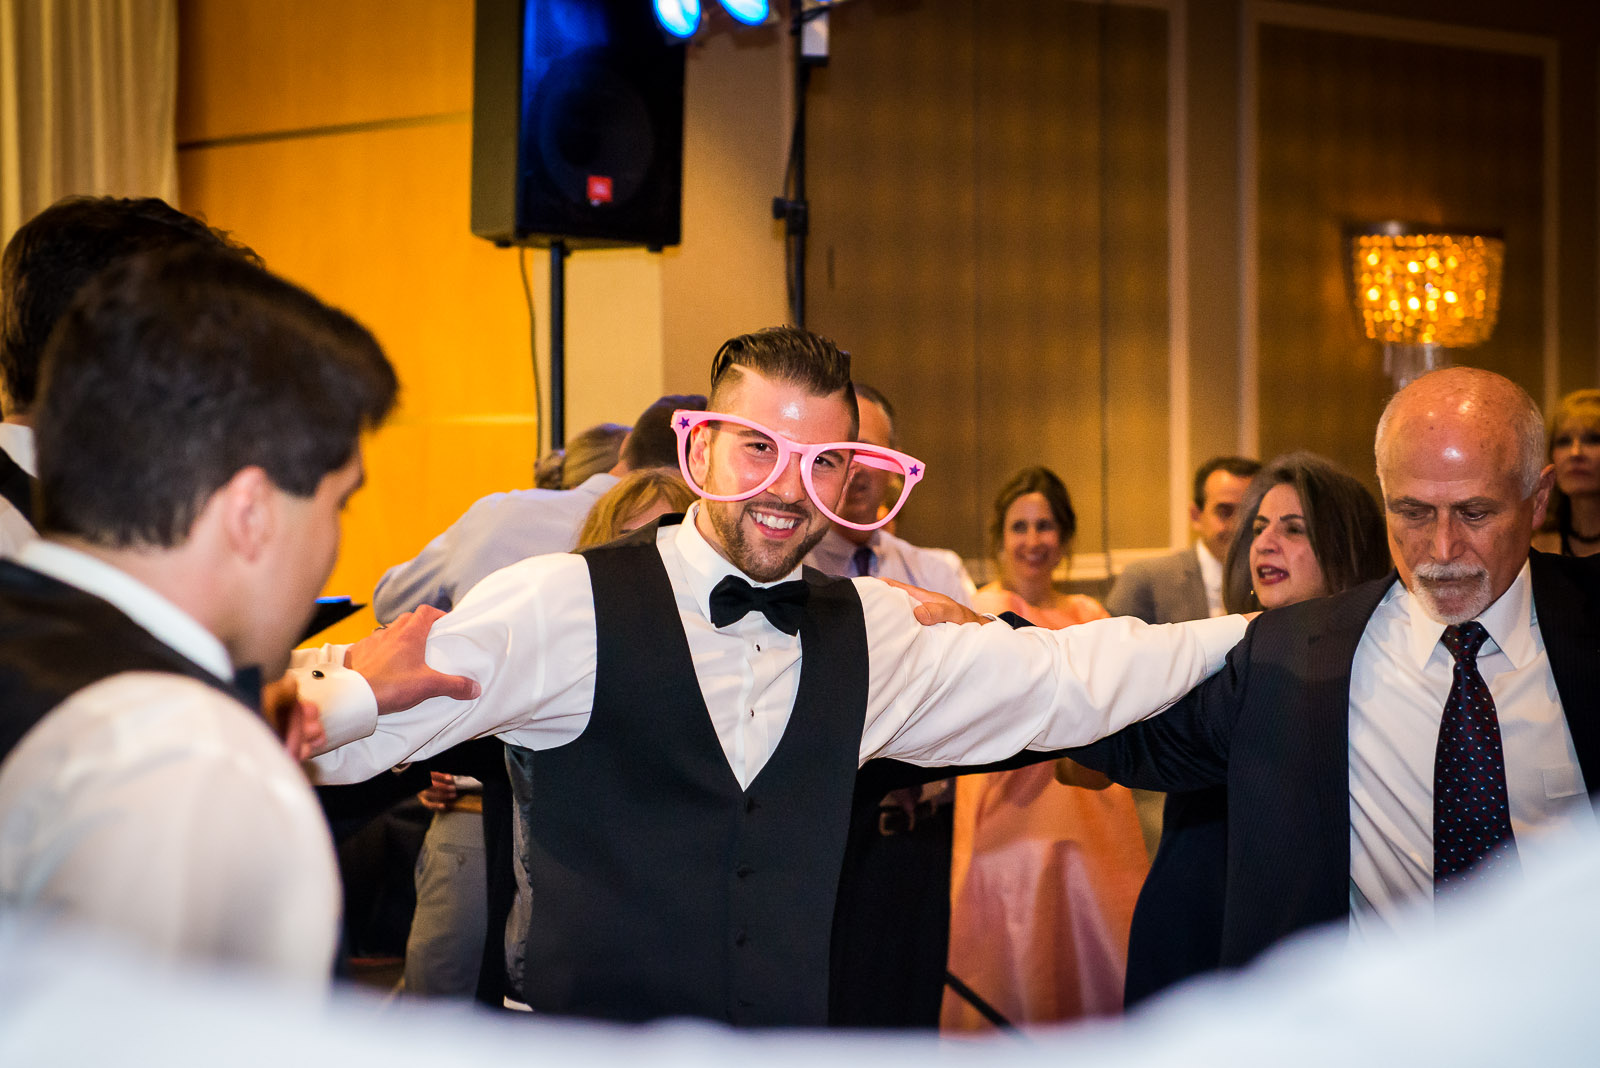 eric_and_christy_photographers_blog_wedding_emilypeter-48